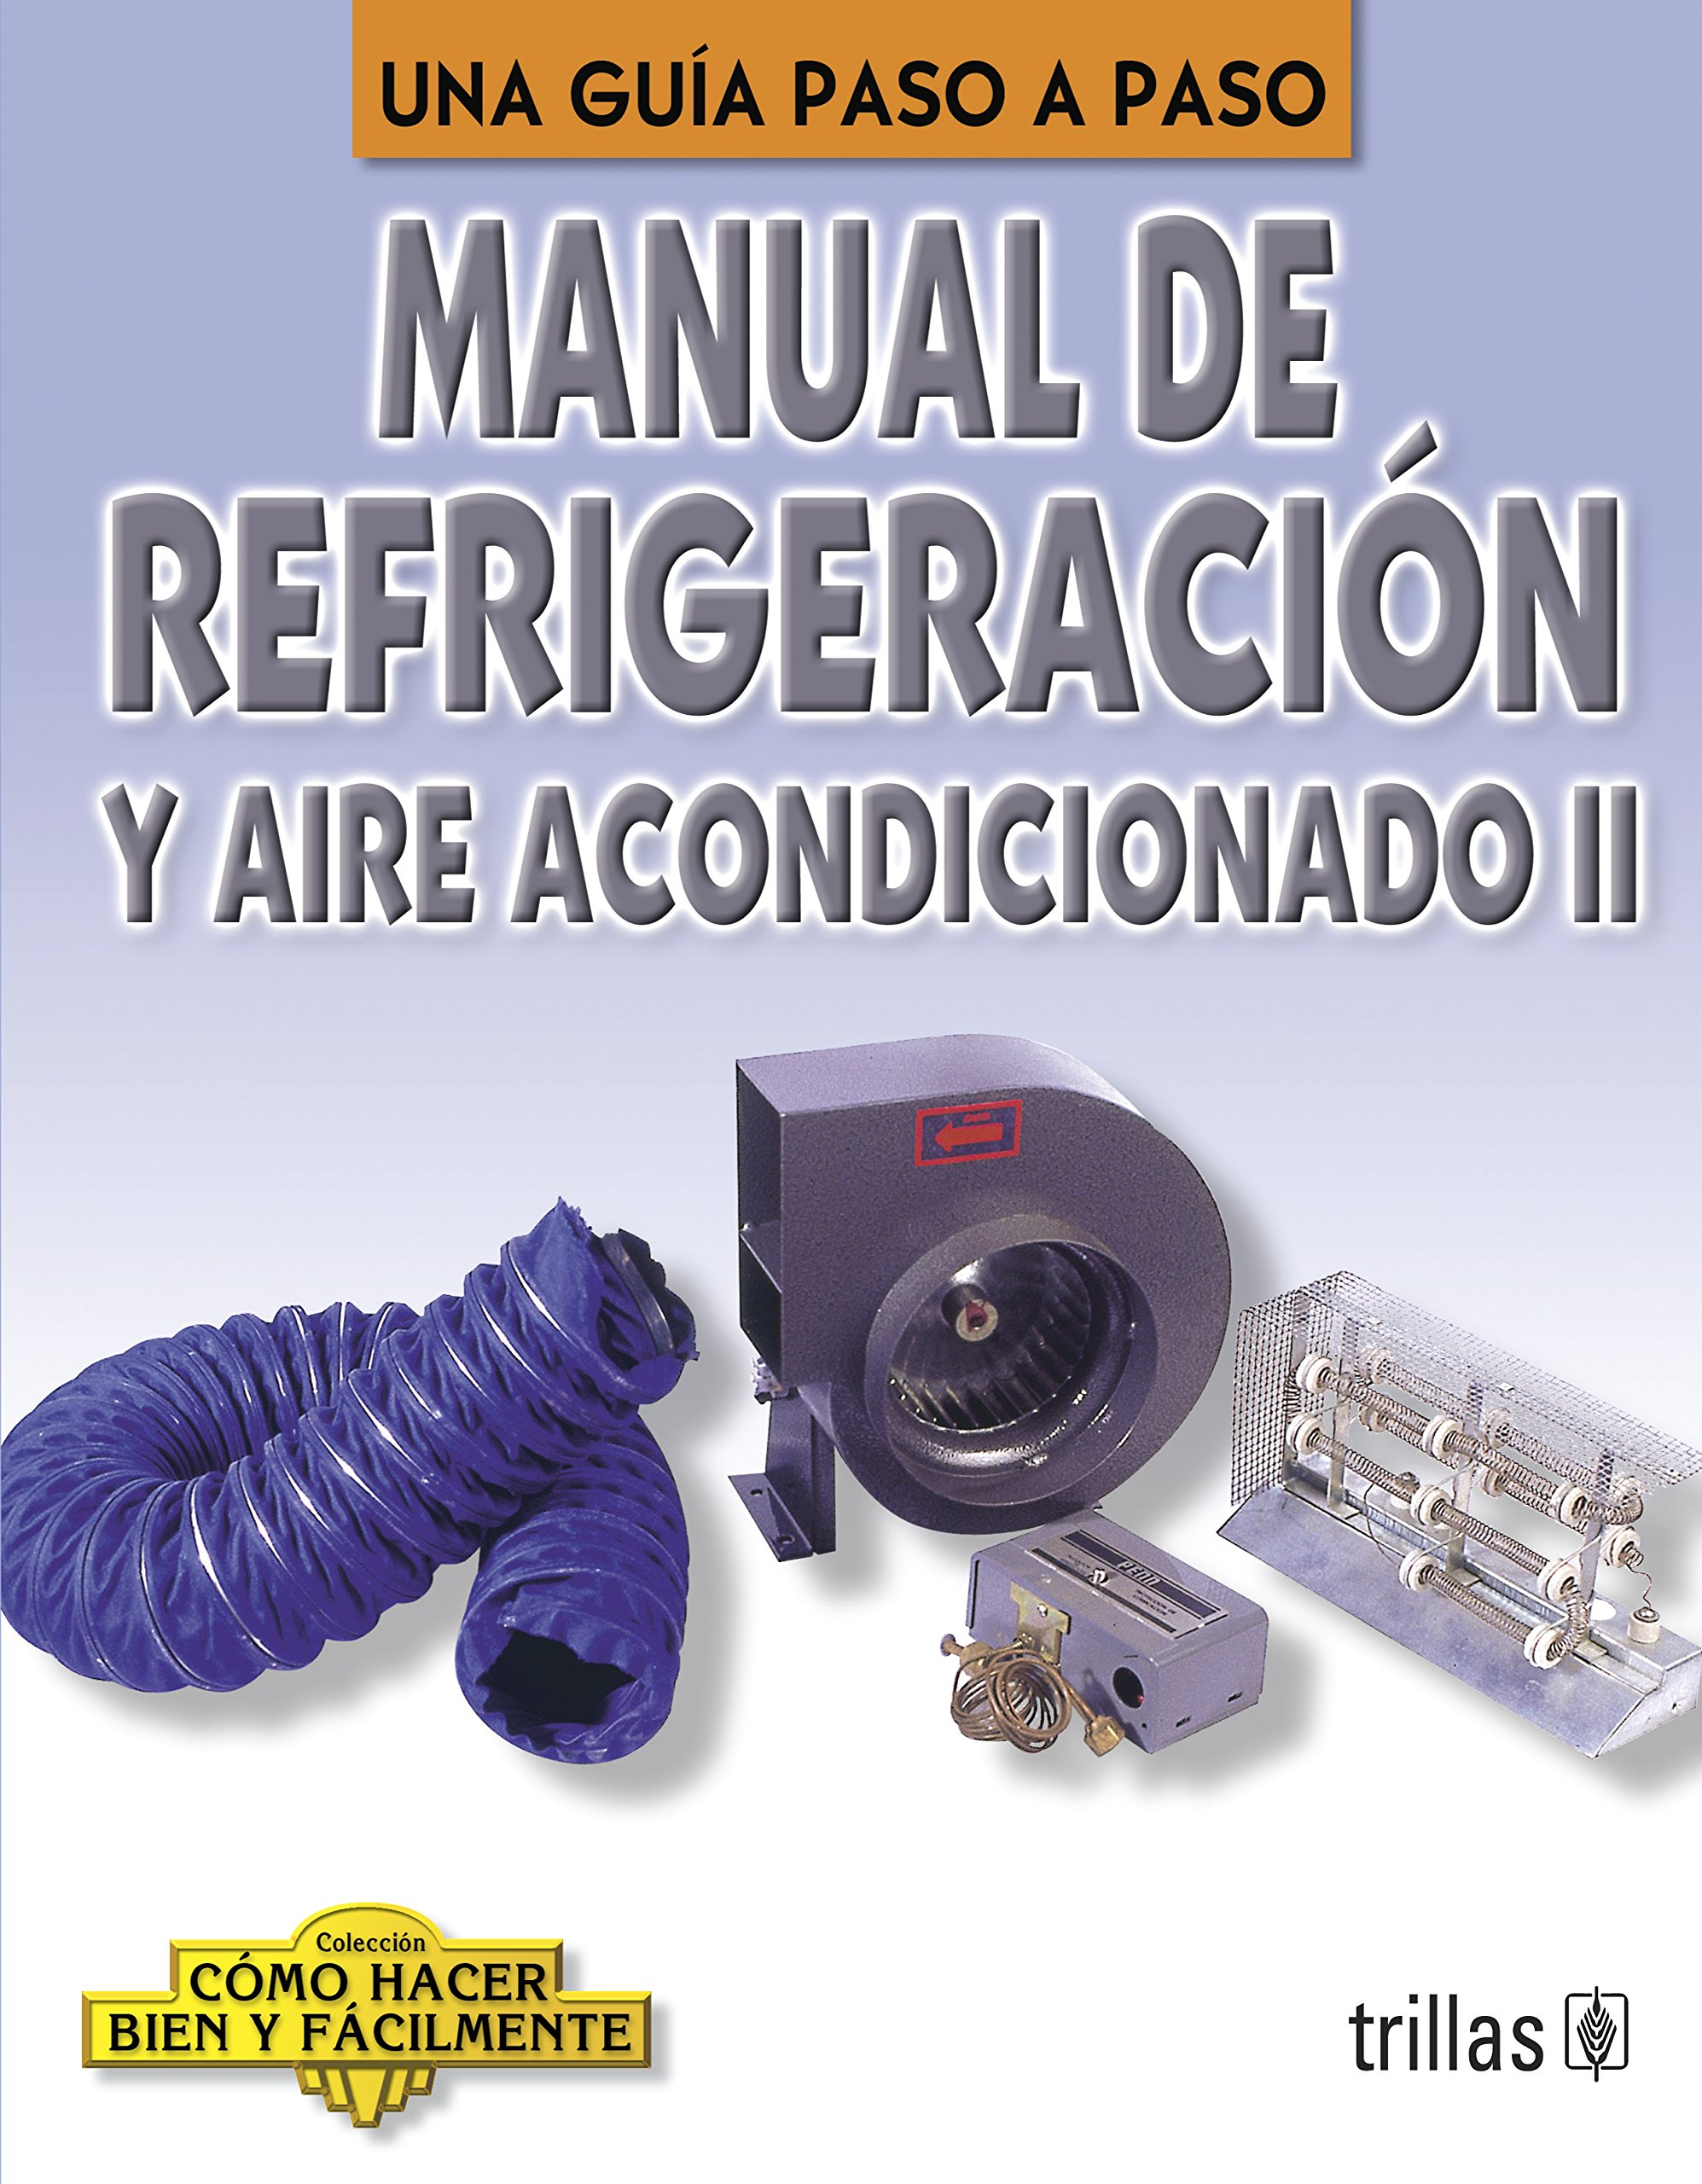 Manual De Refrigeracion Y Aire Acondicionado: Una Guia a Paso A Paso / A Step-by-Step Guide (Coleccion Como hacer bien y facilmente/How to Do it Right and ...